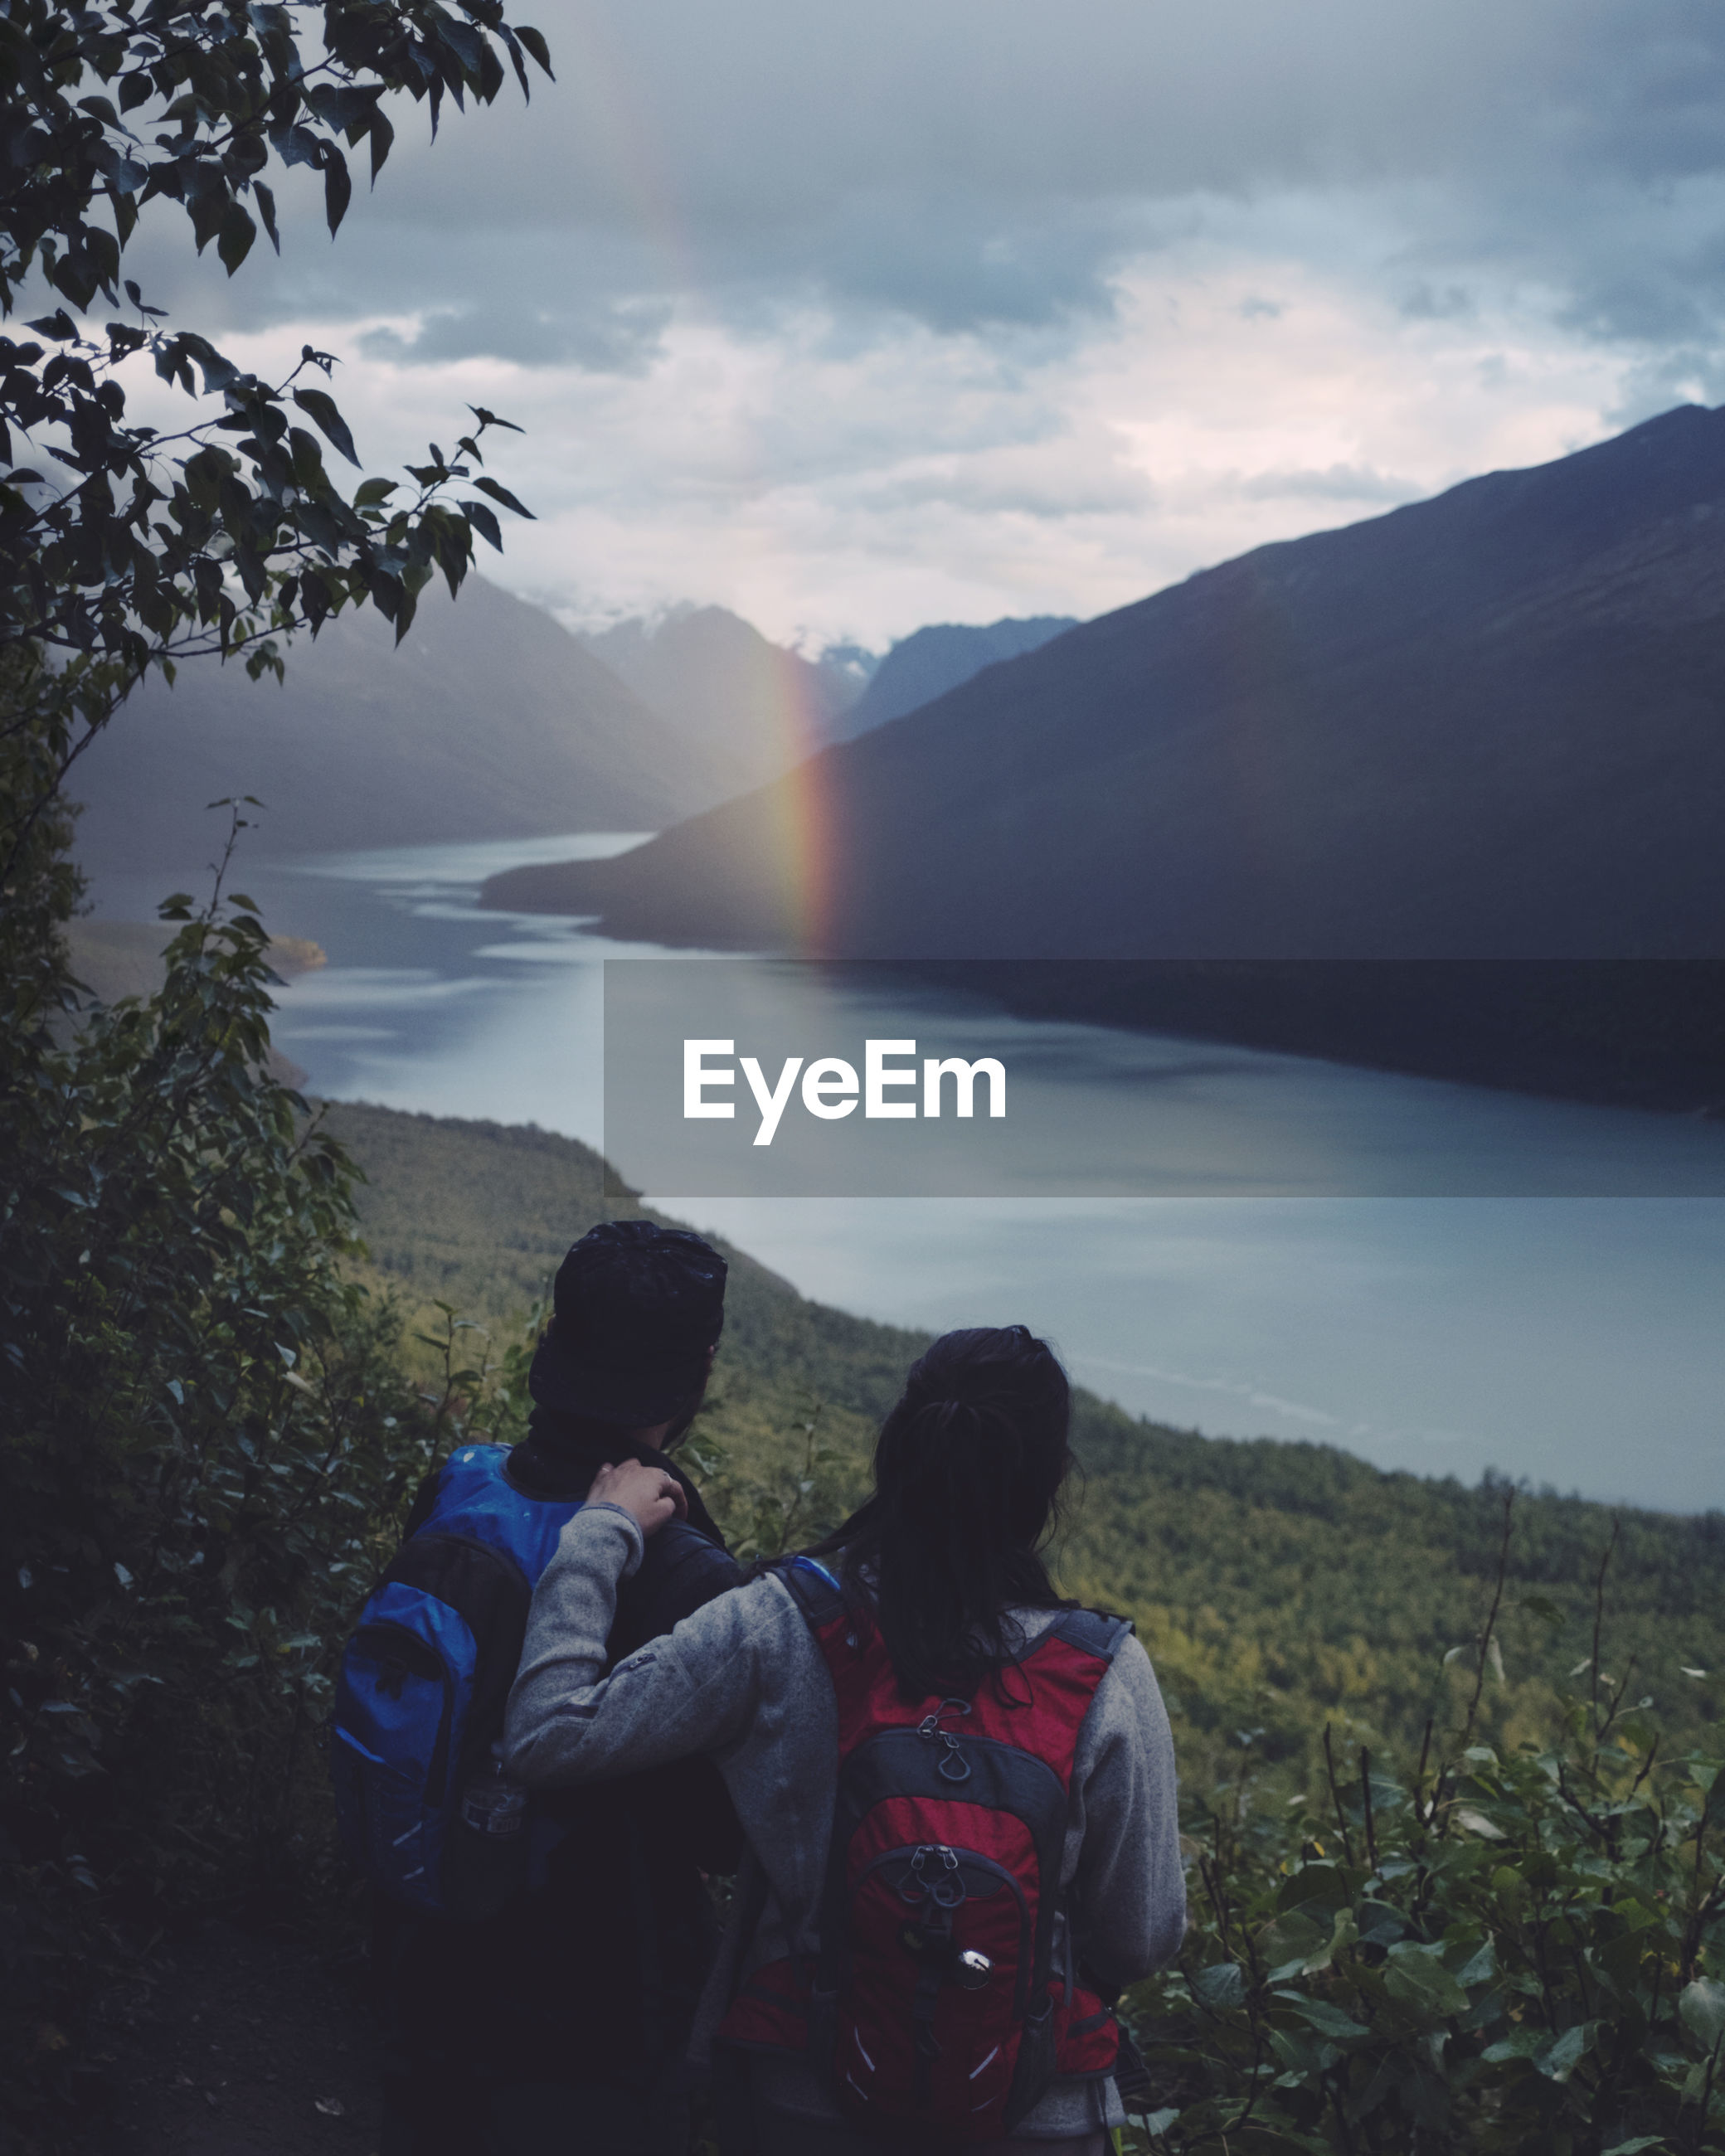 Friends looking at lake and mountains during sunset